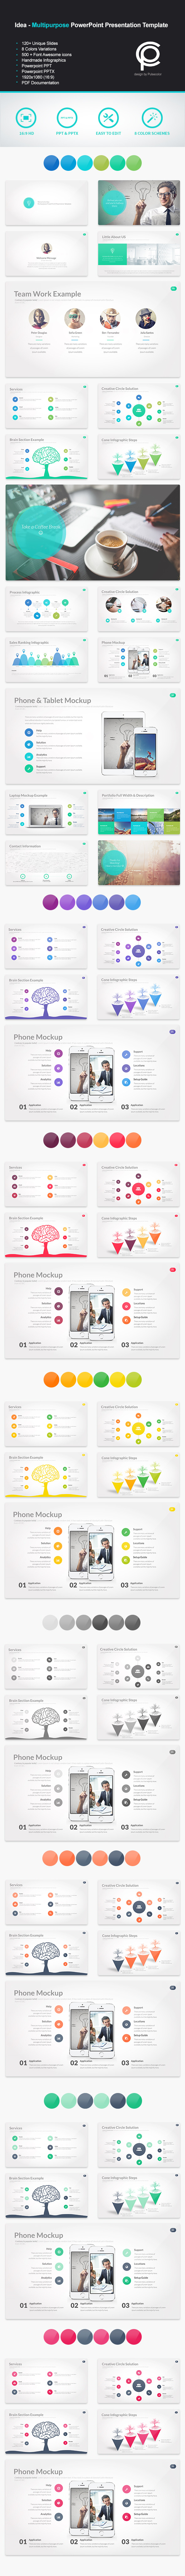 GraphicRiver Idea Multipurpose PowerPoint Presentation 11648605